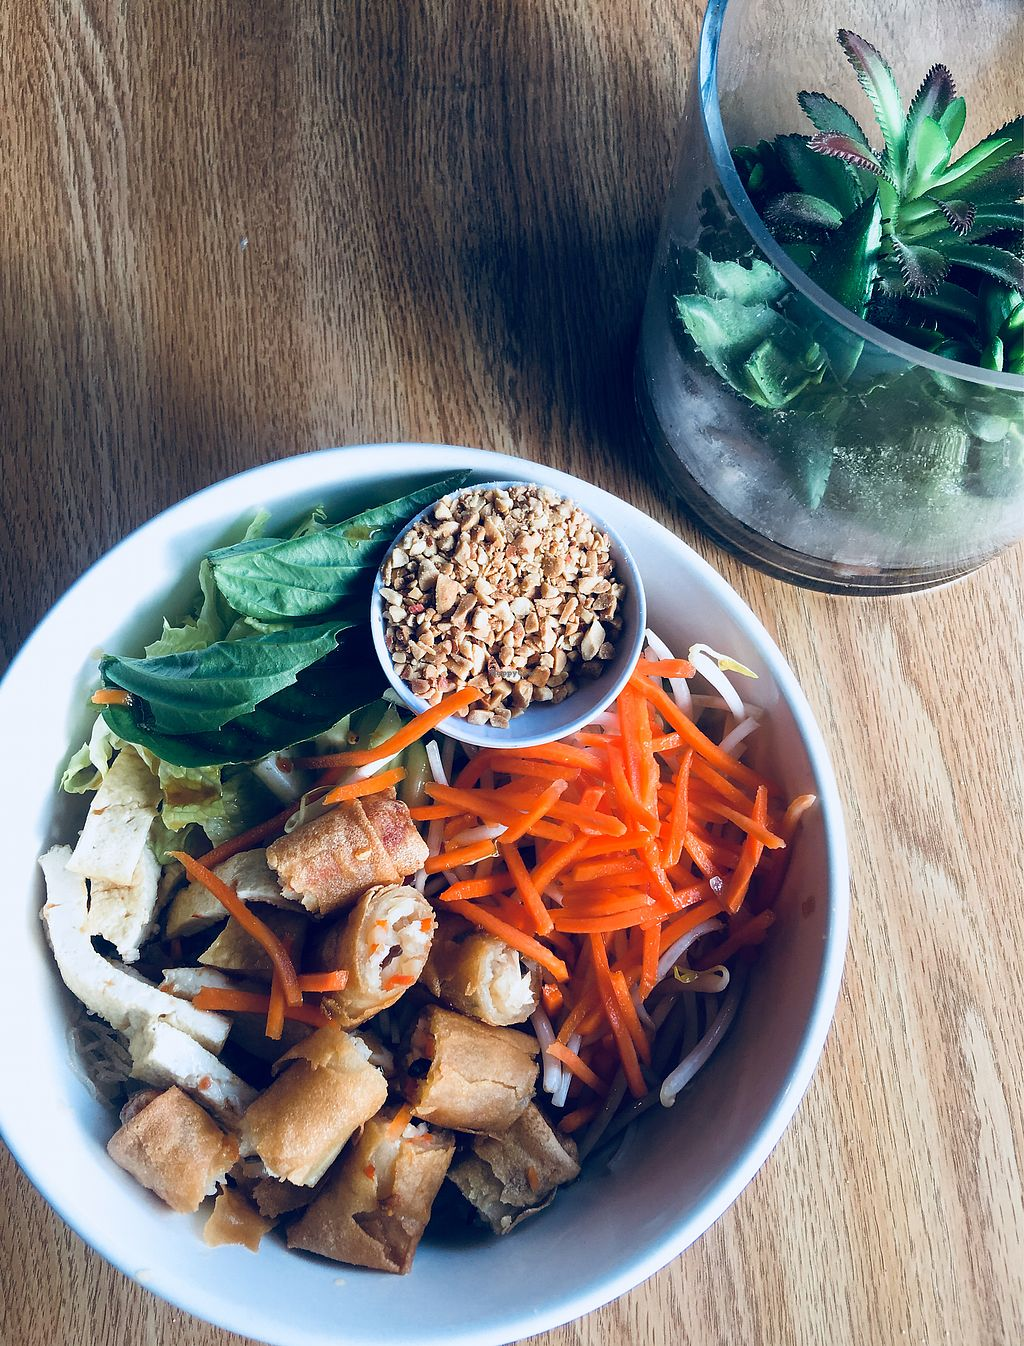 """Photo of 208 Pho & Vegan  by <a href=""""/members/profile/ChereseTarter"""">ChereseTarter</a> <br/>Vegan Bun Chay <br/> March 24, 2018  - <a href='/contact/abuse/image/93583/375036'>Report</a>"""